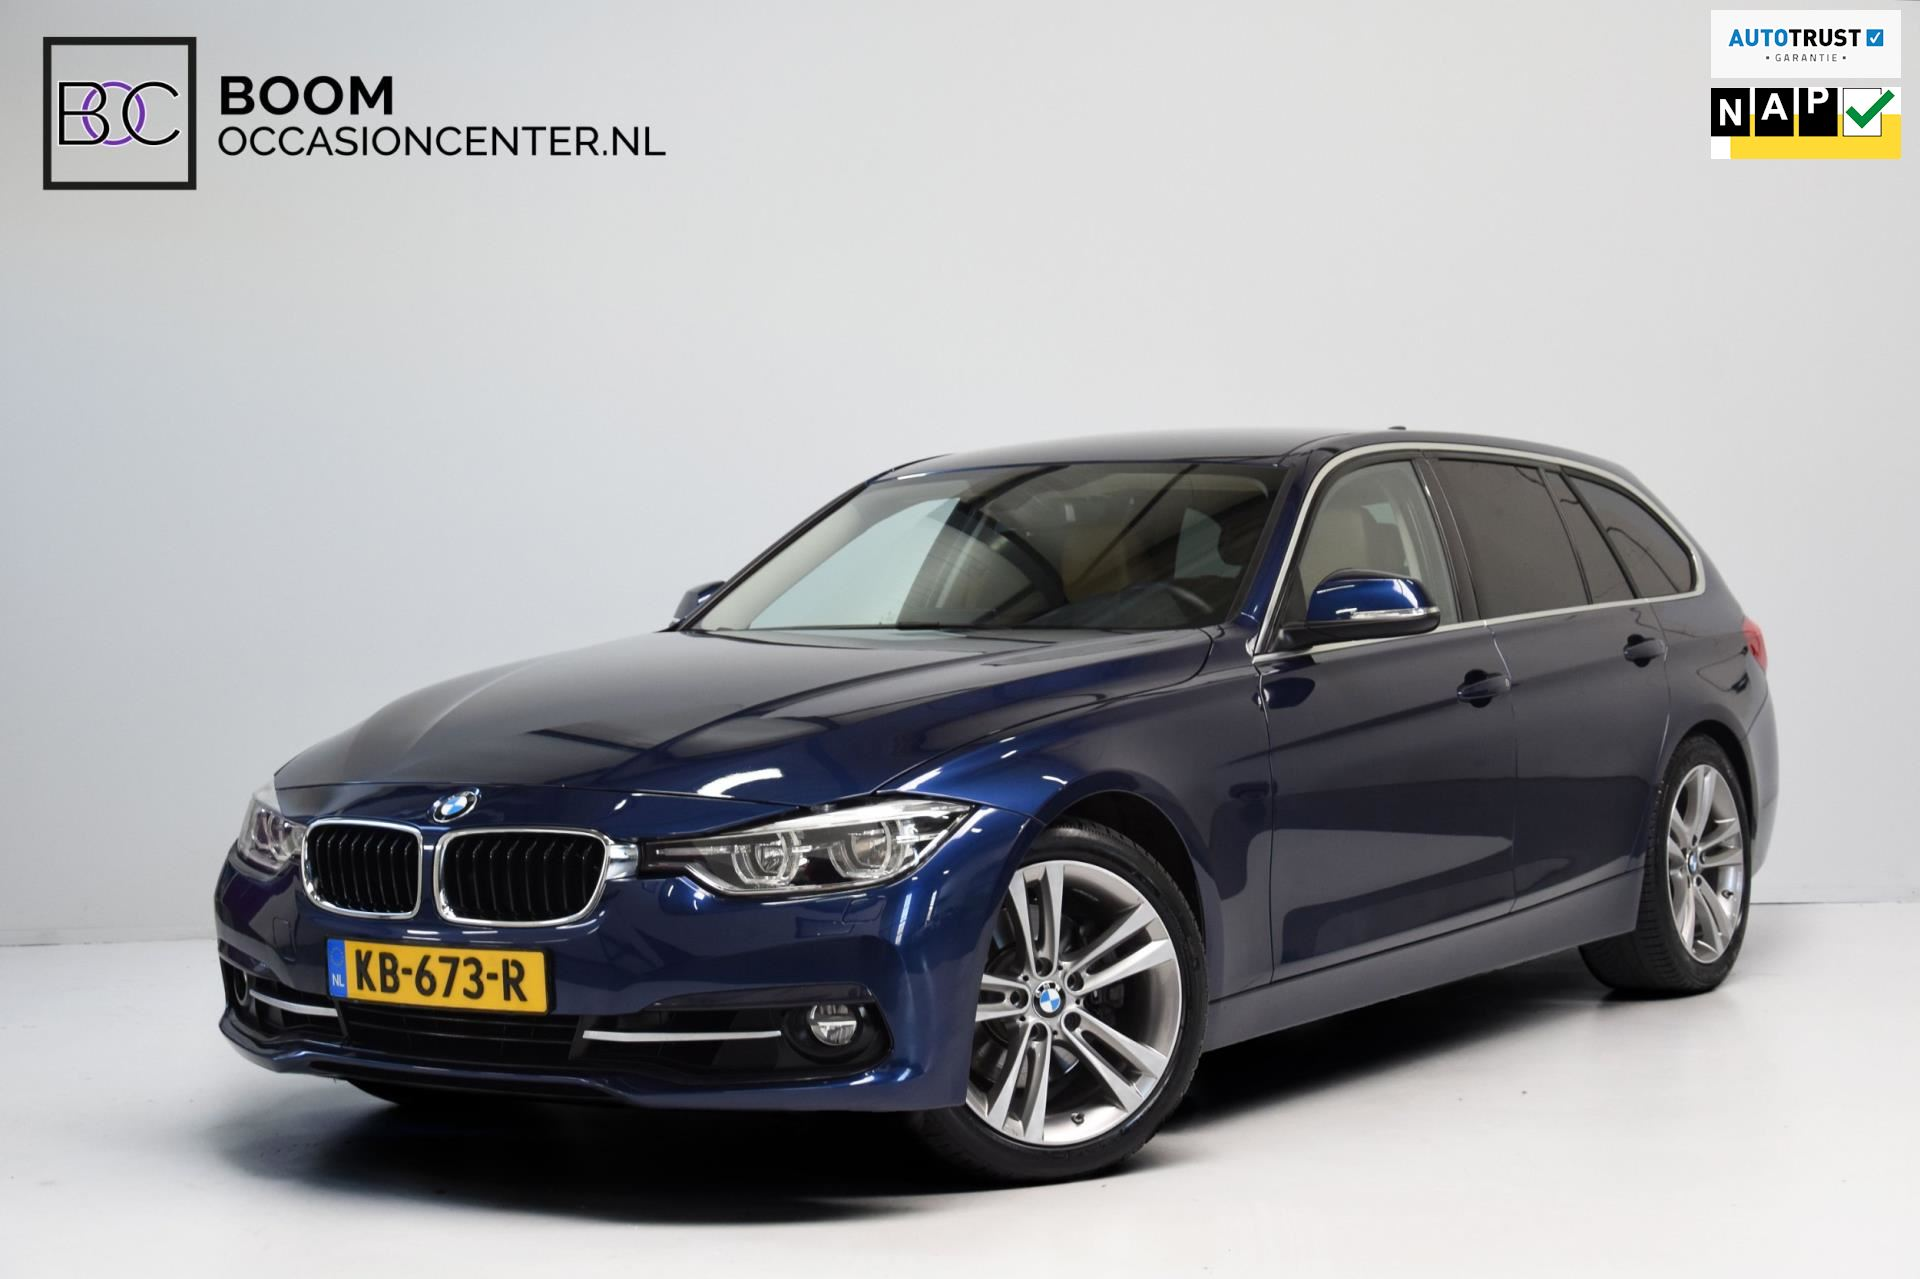 BMW 3-serie Touring occasion - BoomOccasionCenter.nl